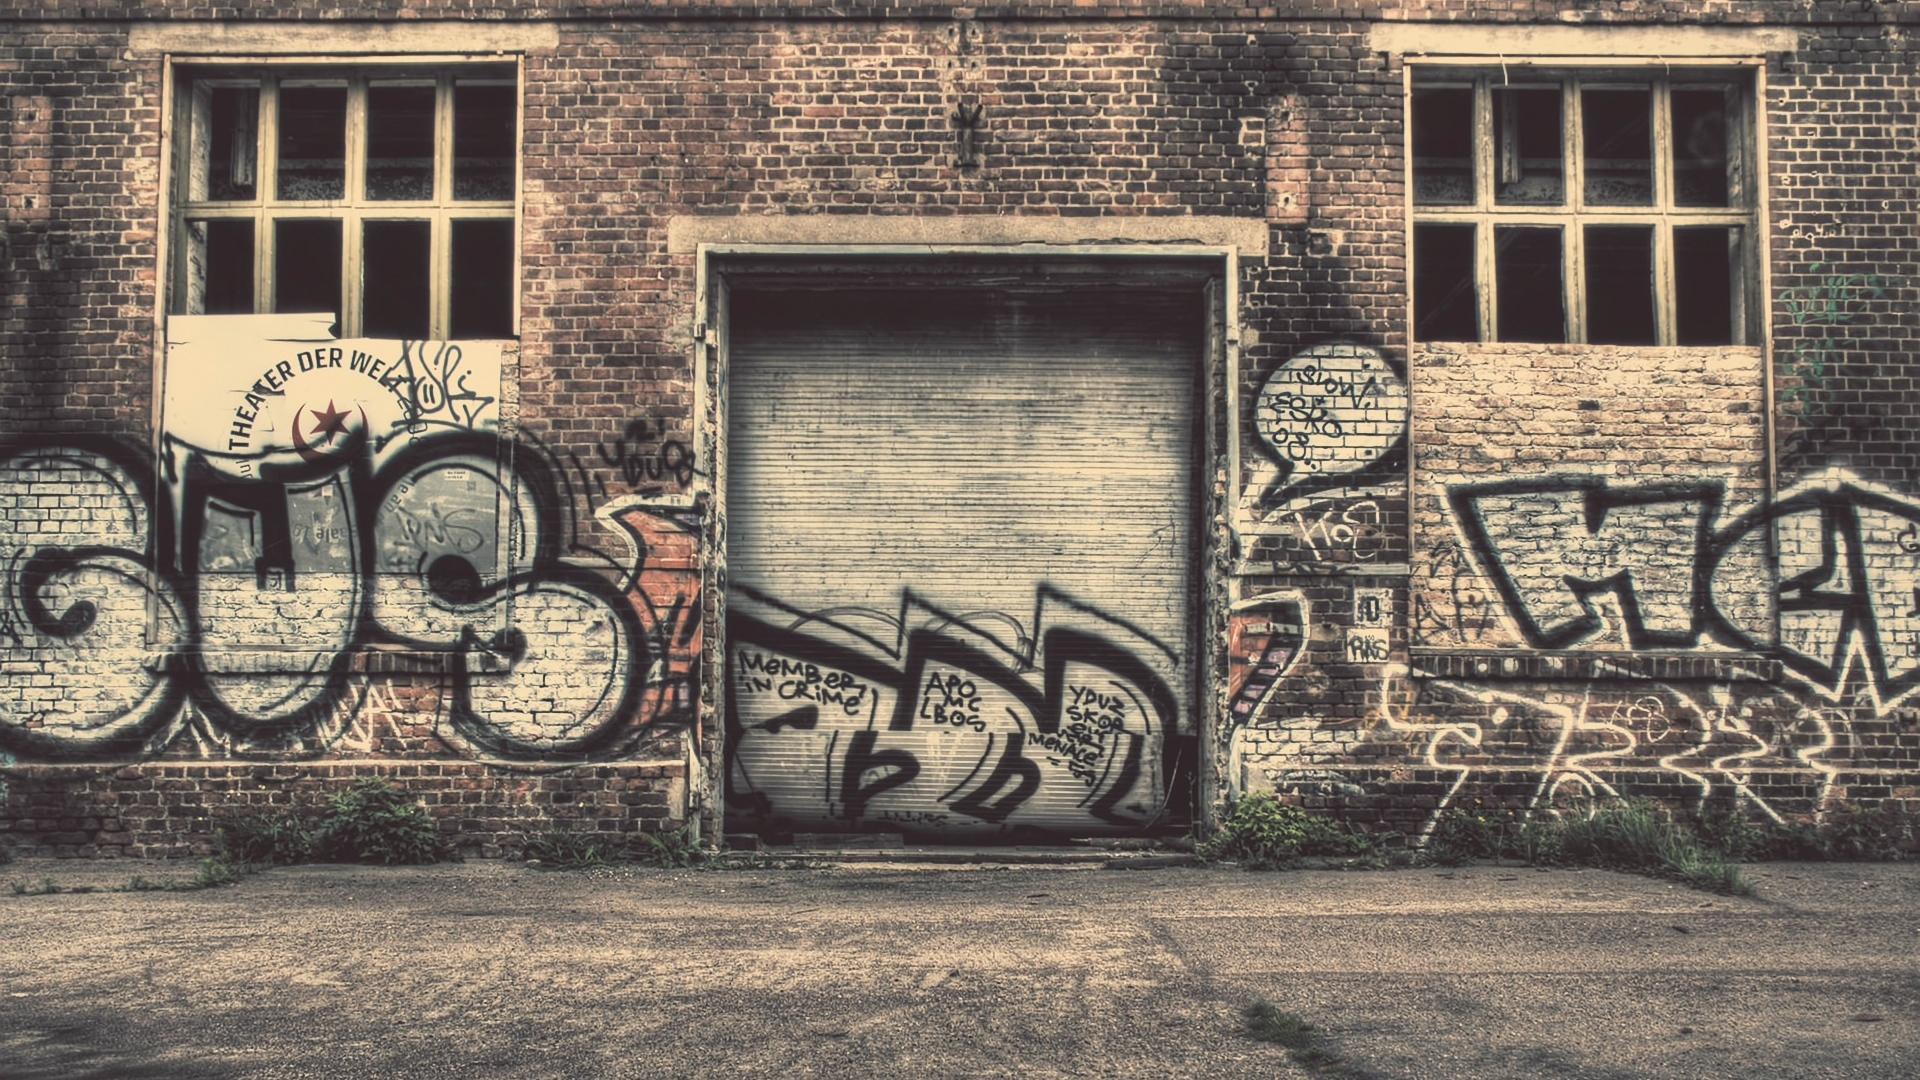 download wallpaper 1920x1080 wall, city, graffiti, street, old full